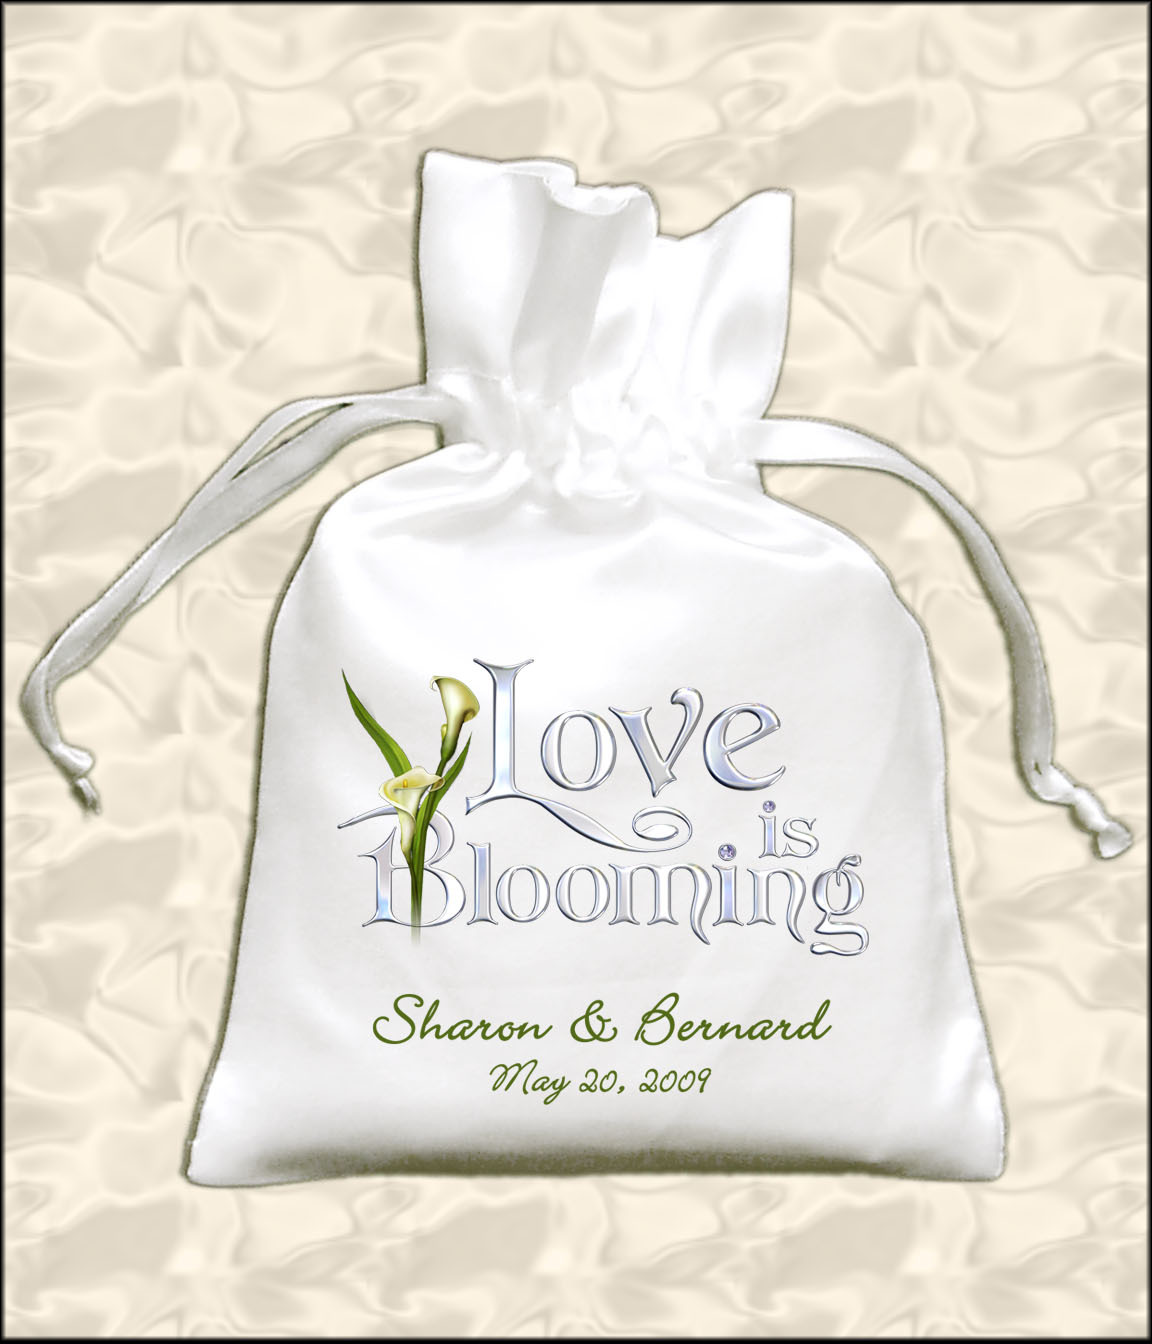 Favors & Gifts, Favors, Spring, Wedding, Calla, Lily, Personalized, Cheap